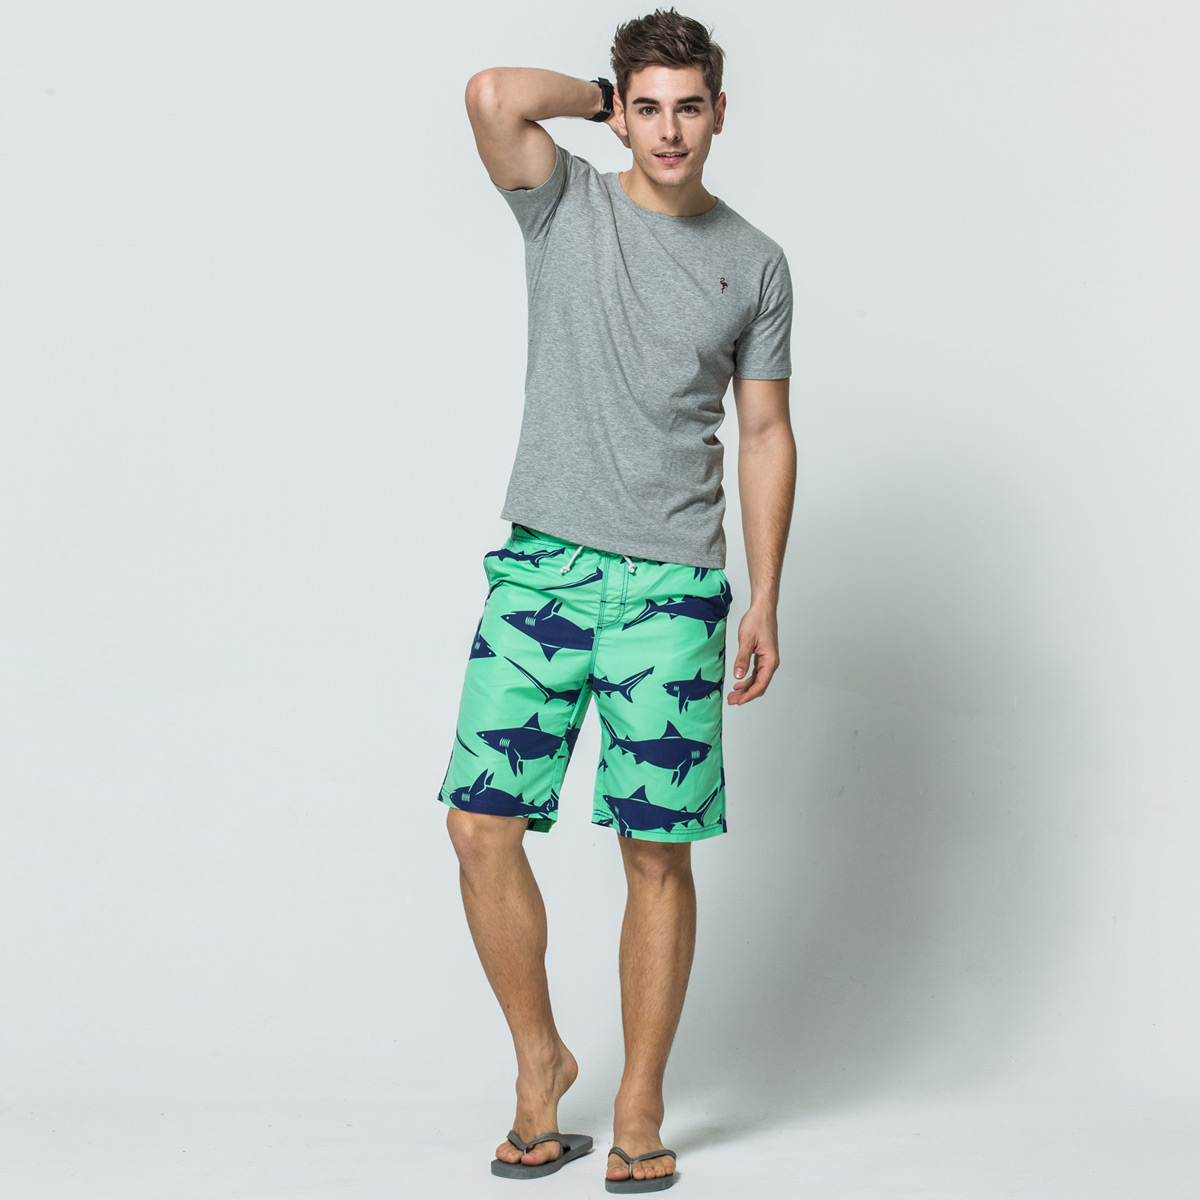 WIHVE Mens Swim Trunks Electric Guitars Quick Dry Beach Board Short with Mesh Lining